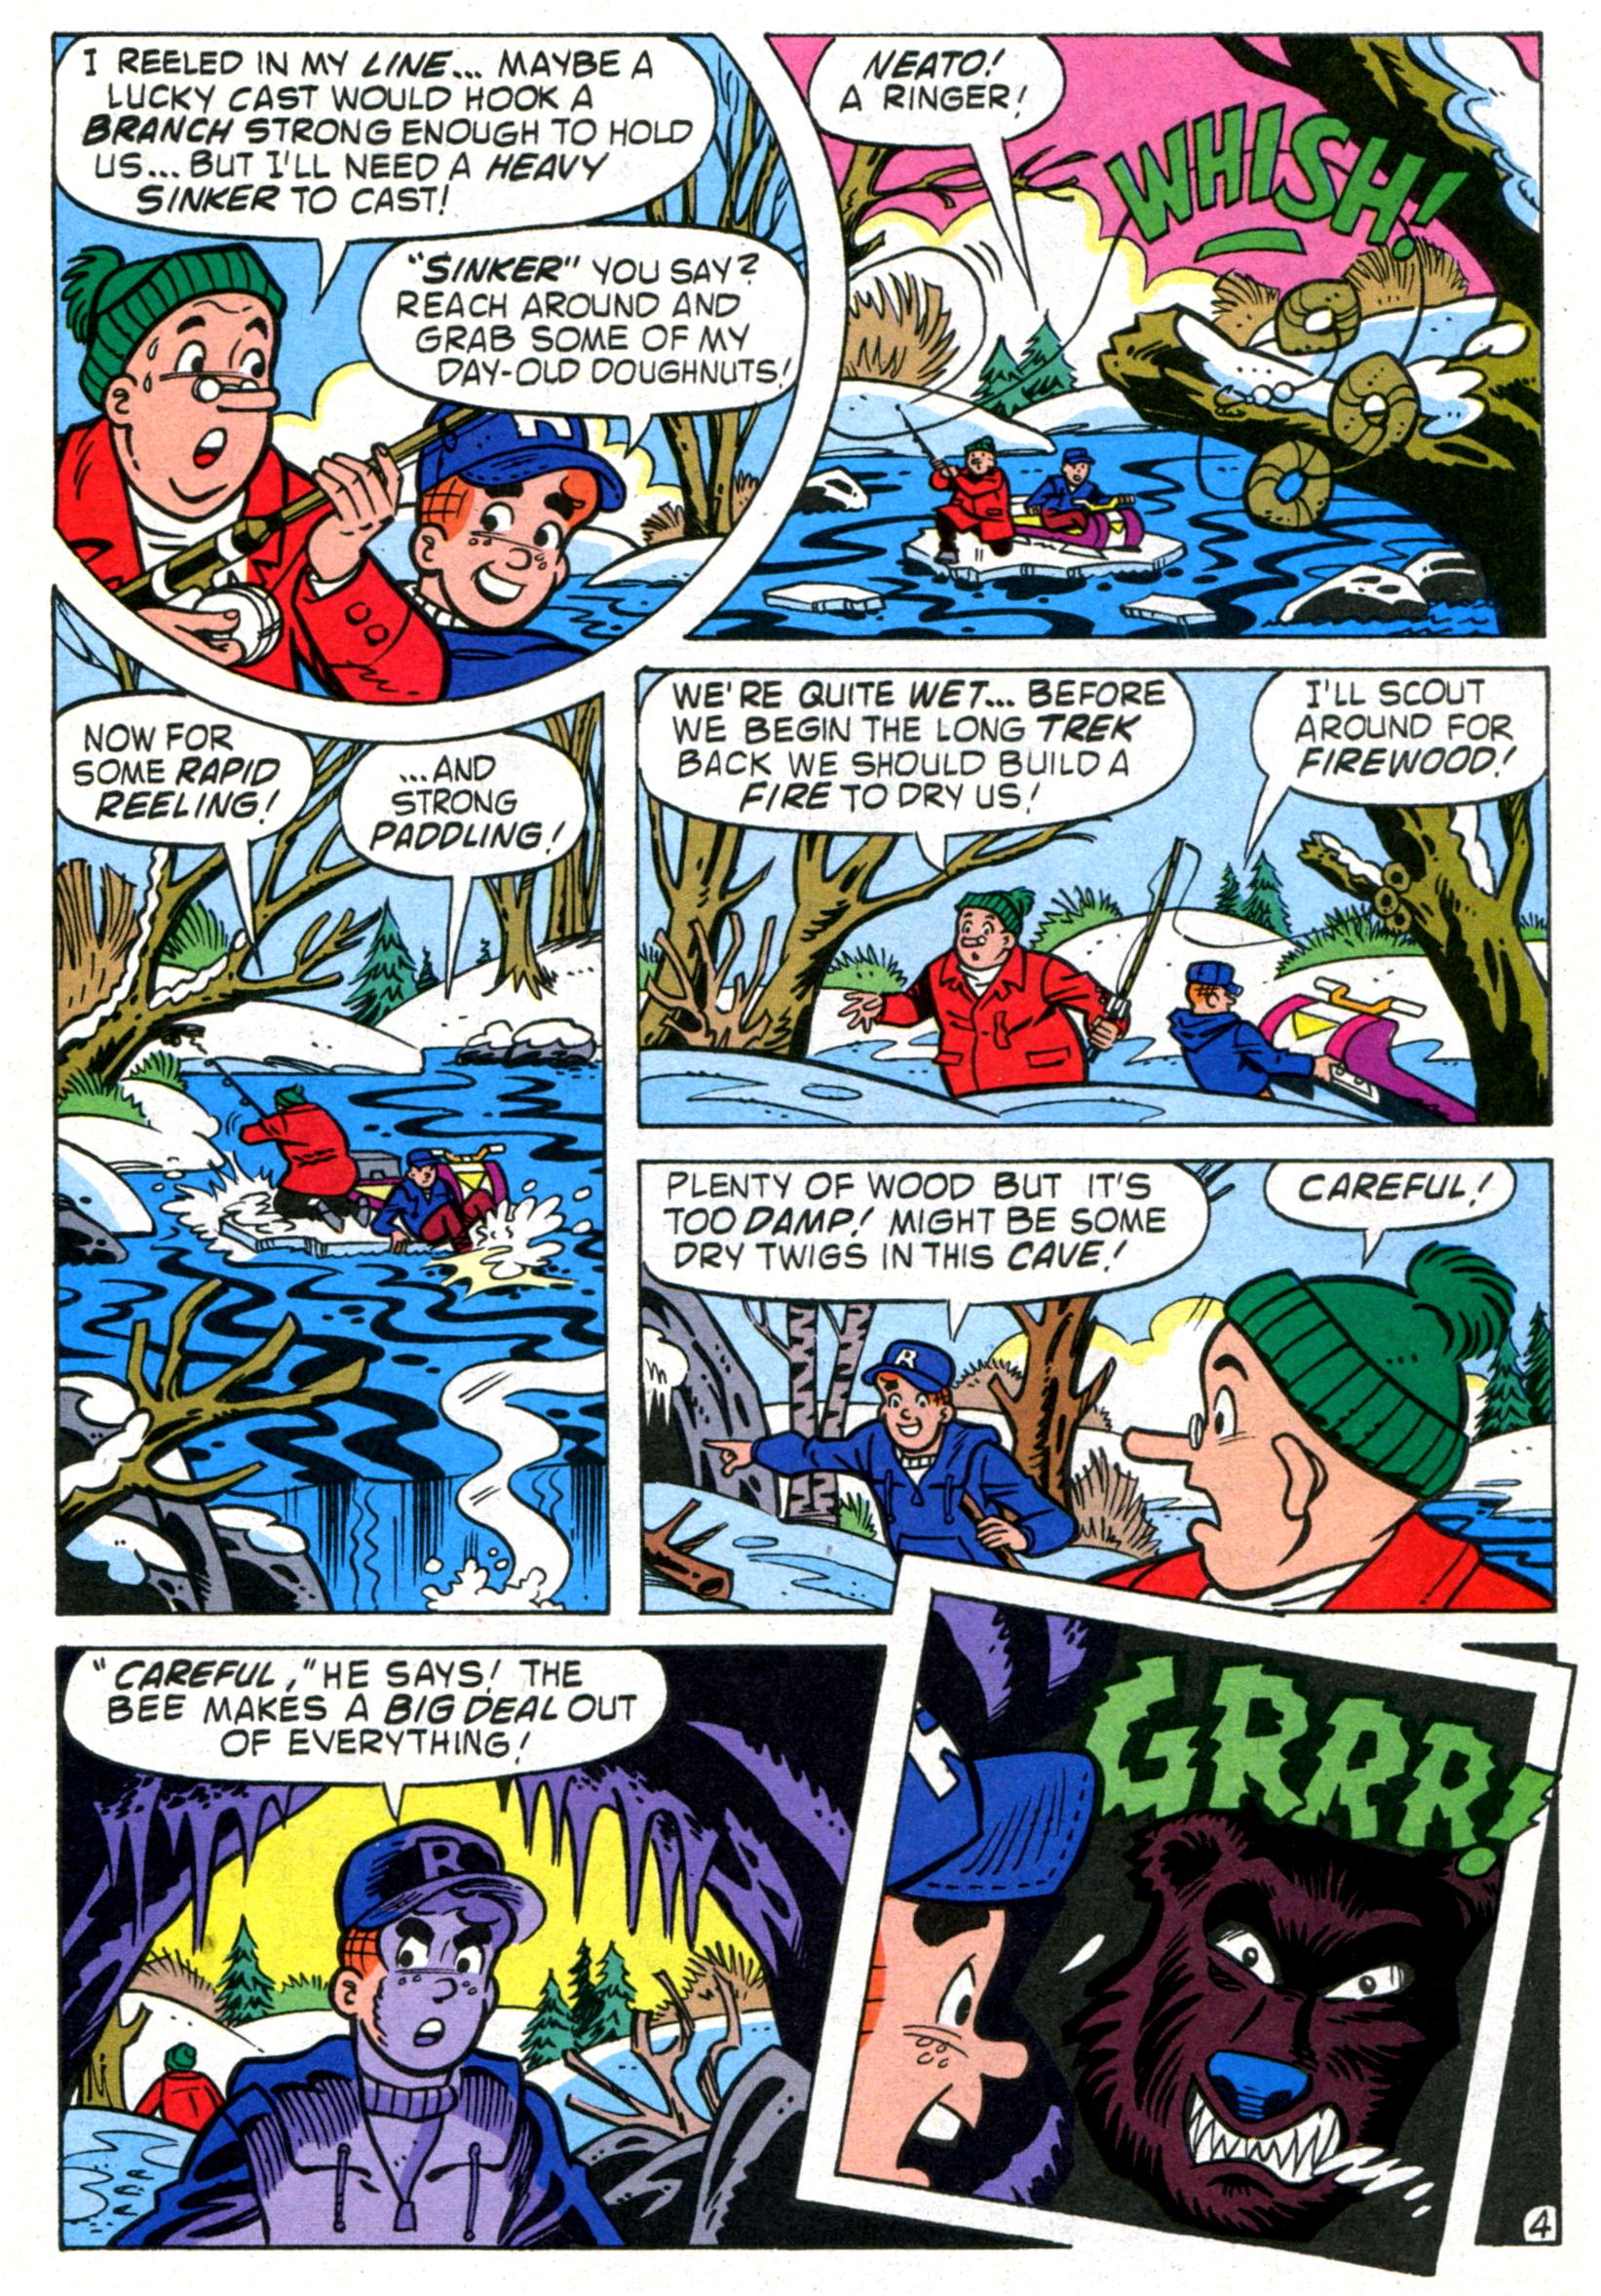 Read online World of Archie comic -  Issue #14 - 23